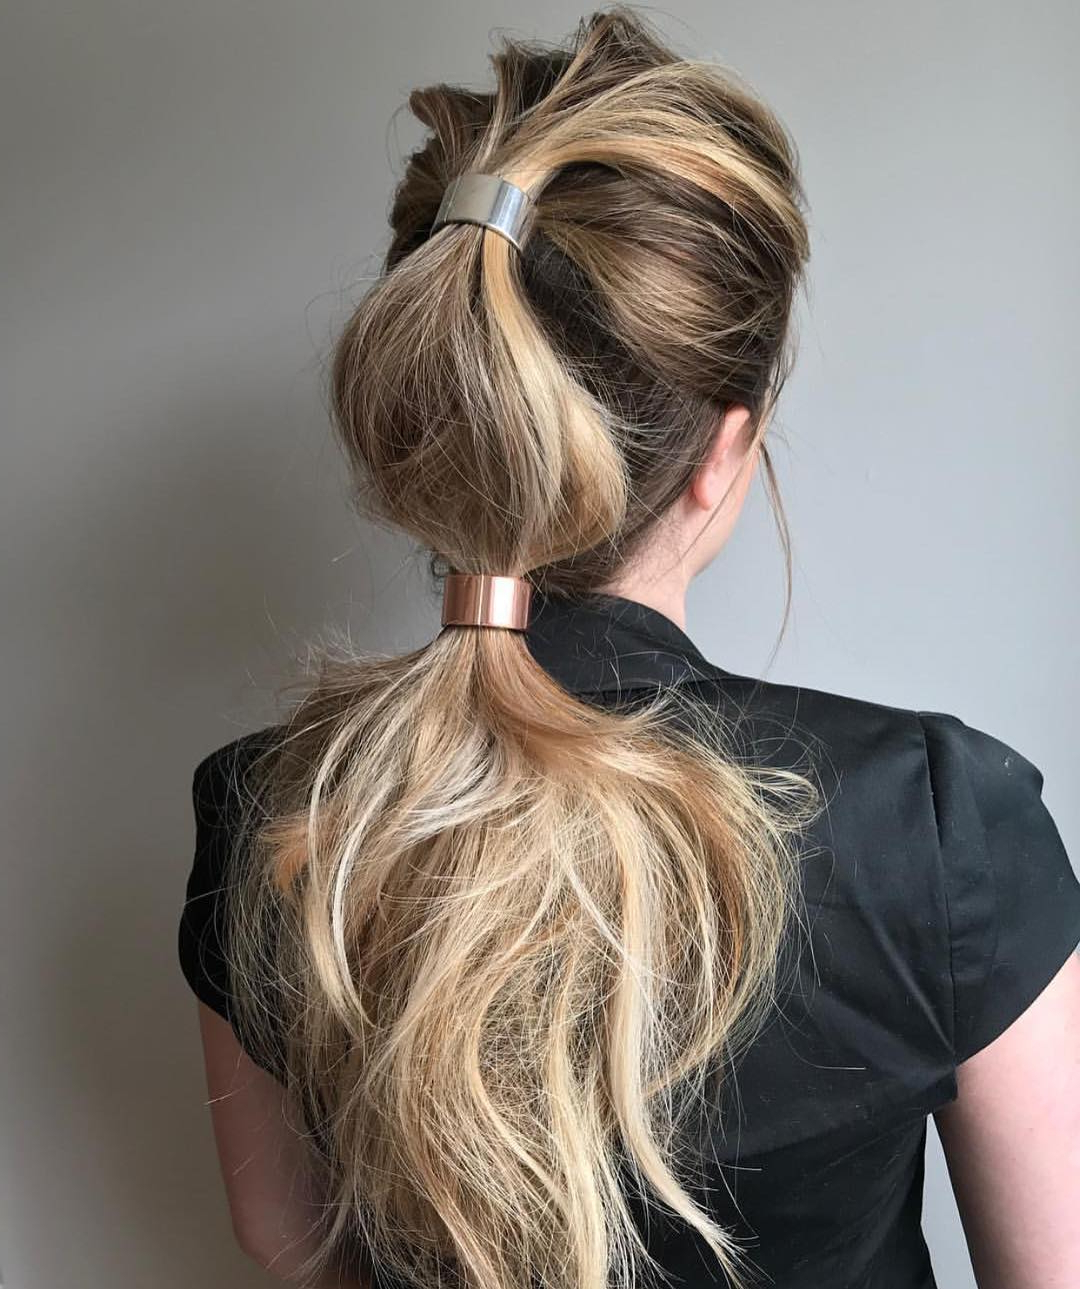 10 Trendiest Ponytail Hairstyles For Long Hair 2019 – Easy With Regard To Most Popular Ponytail Layered Long Hairstyles (Gallery 2 of 20)